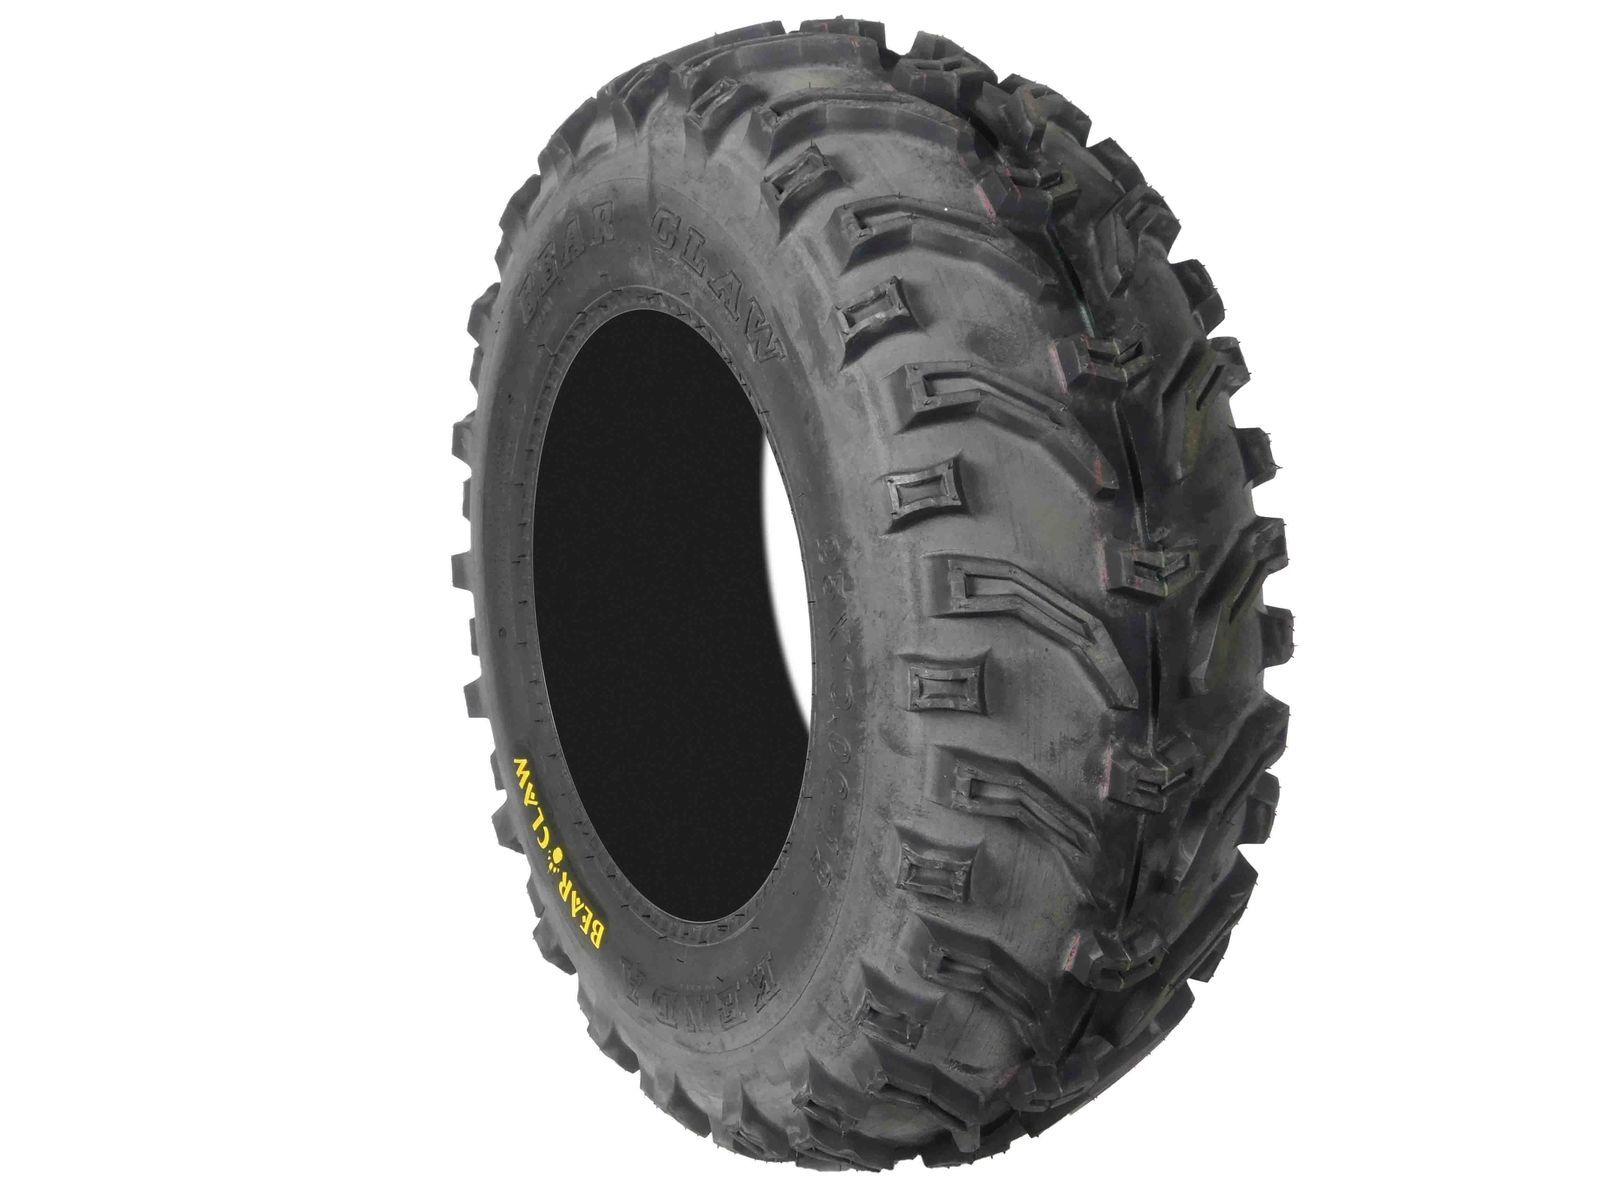 Kenda-Bear-Claw-K299-25x8-12-25x10-12-Front-Rear-ATV-Tire-Set-6PLY-image-5